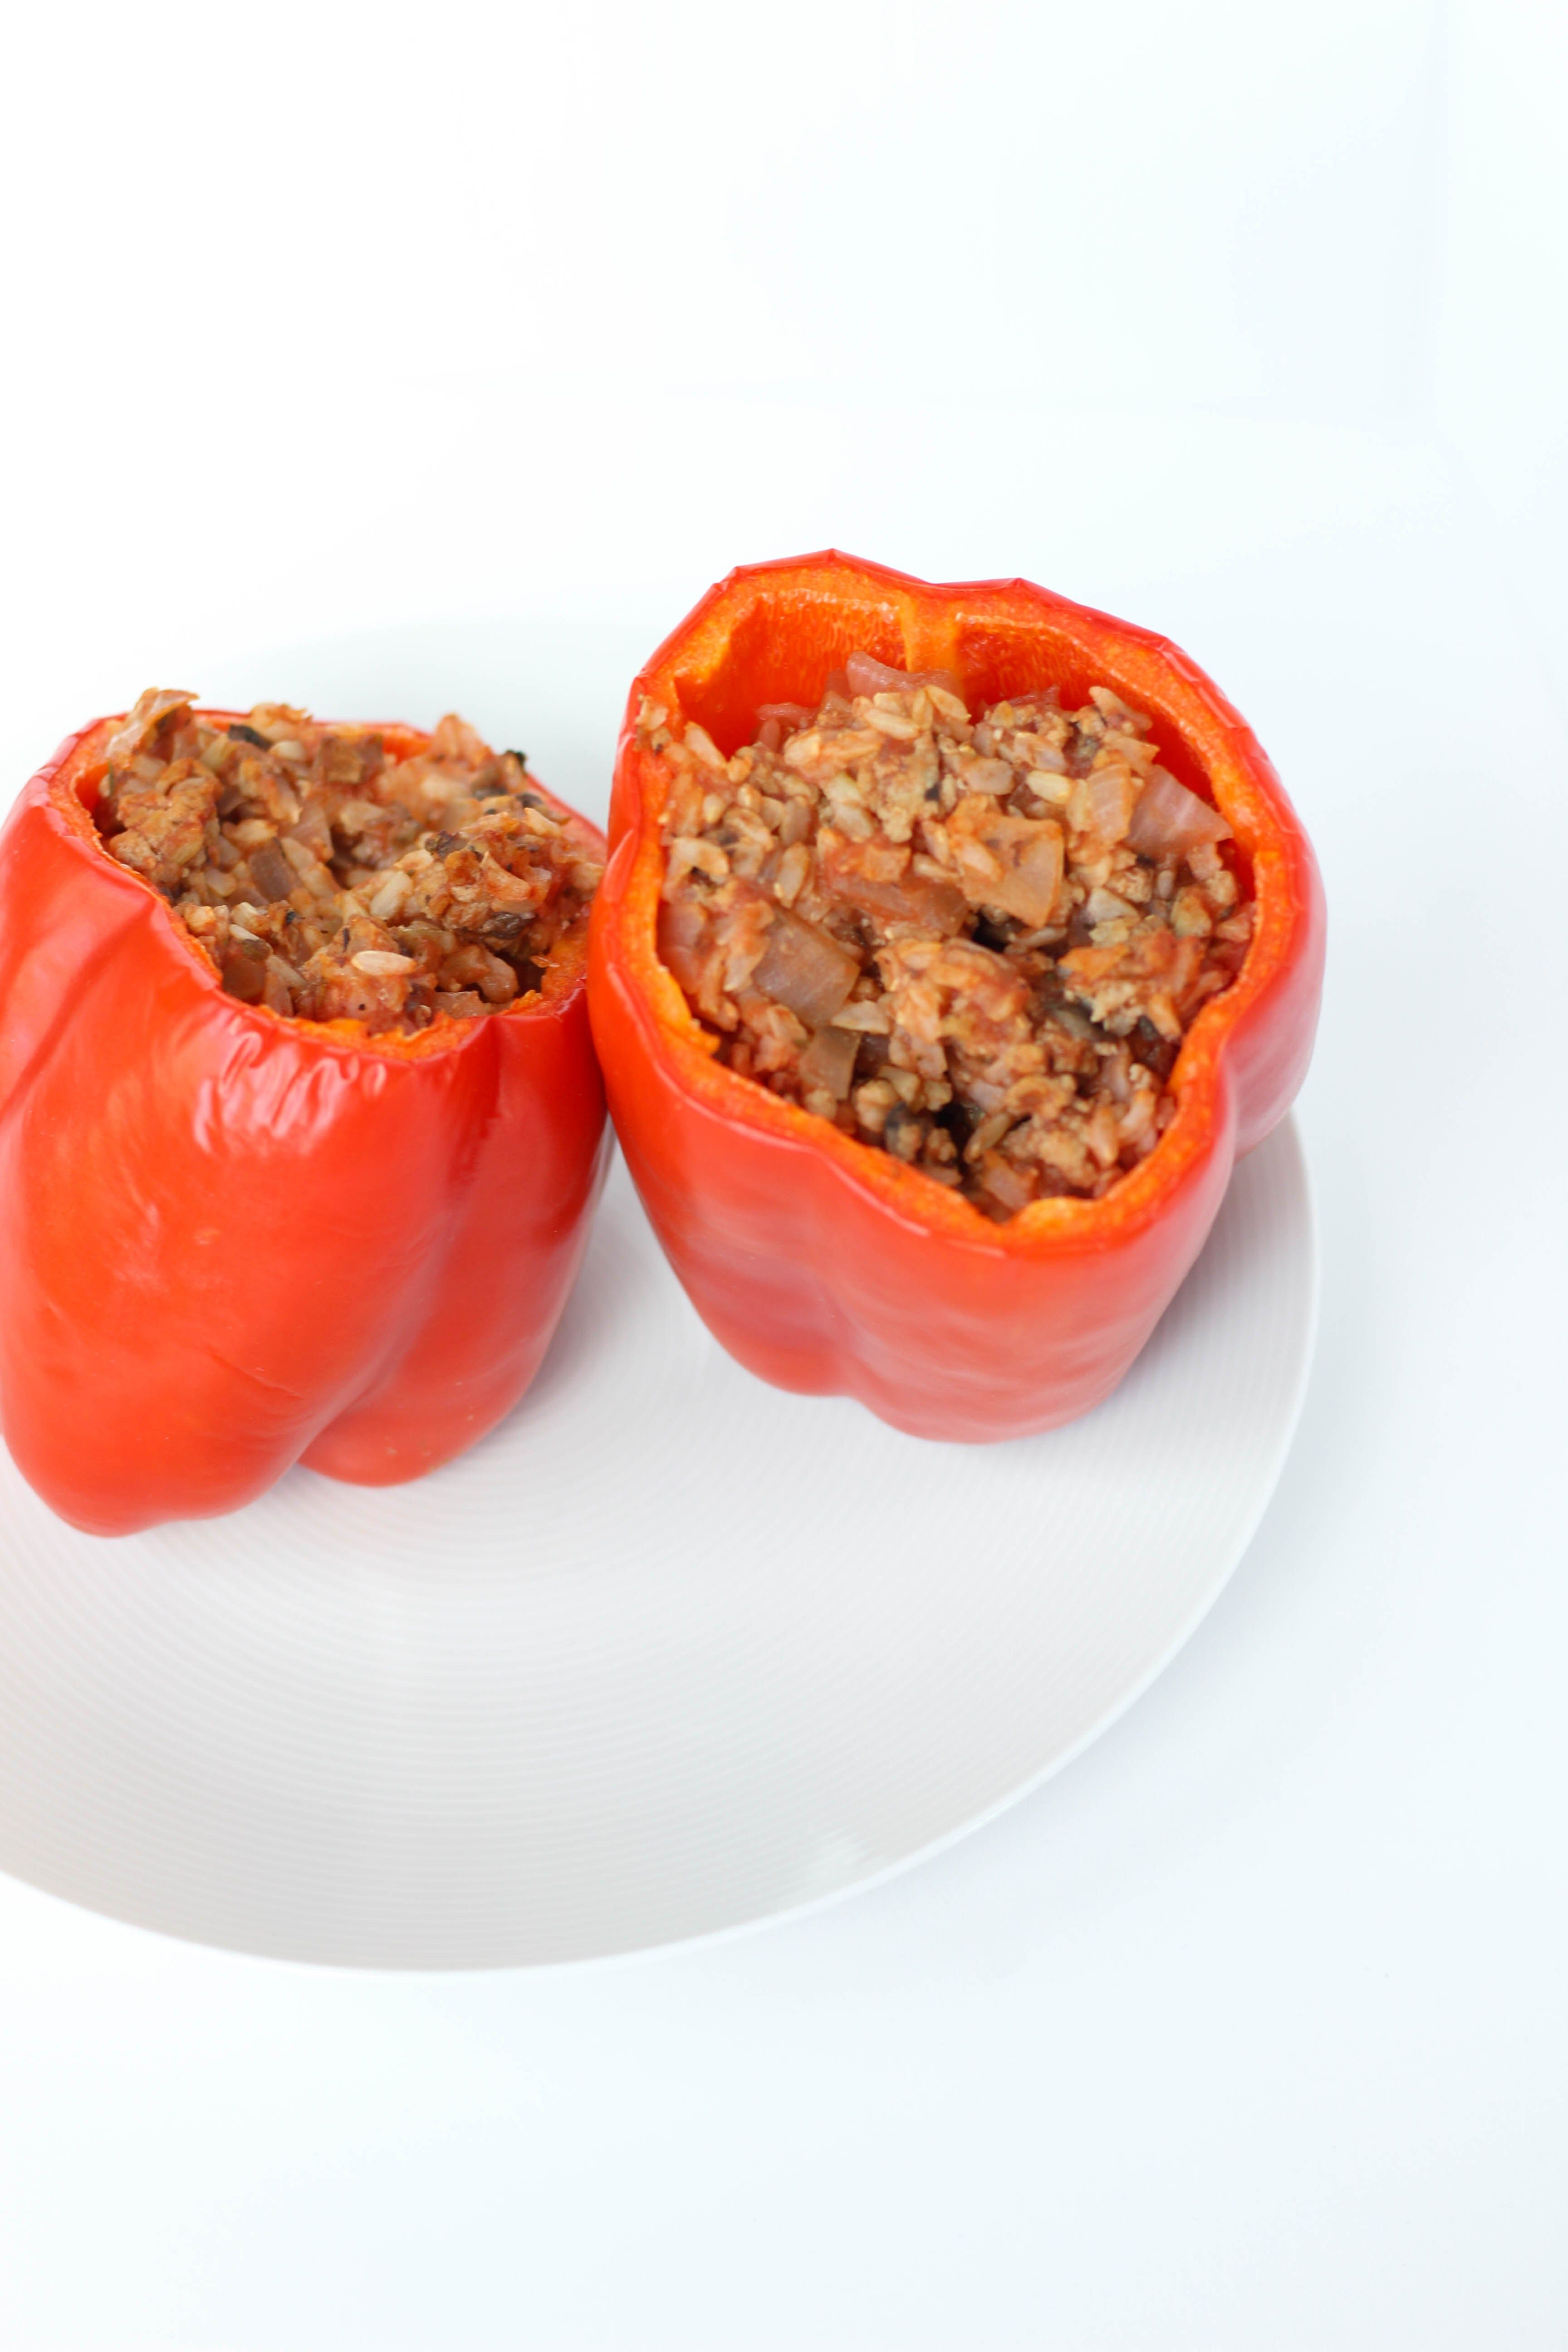 Turkey Stuffed Bell Peppers Gluten Free Stacey Mattinson Nutrition Recipe Stuffed Peppers Stuffed Bell Peppers Classic Food